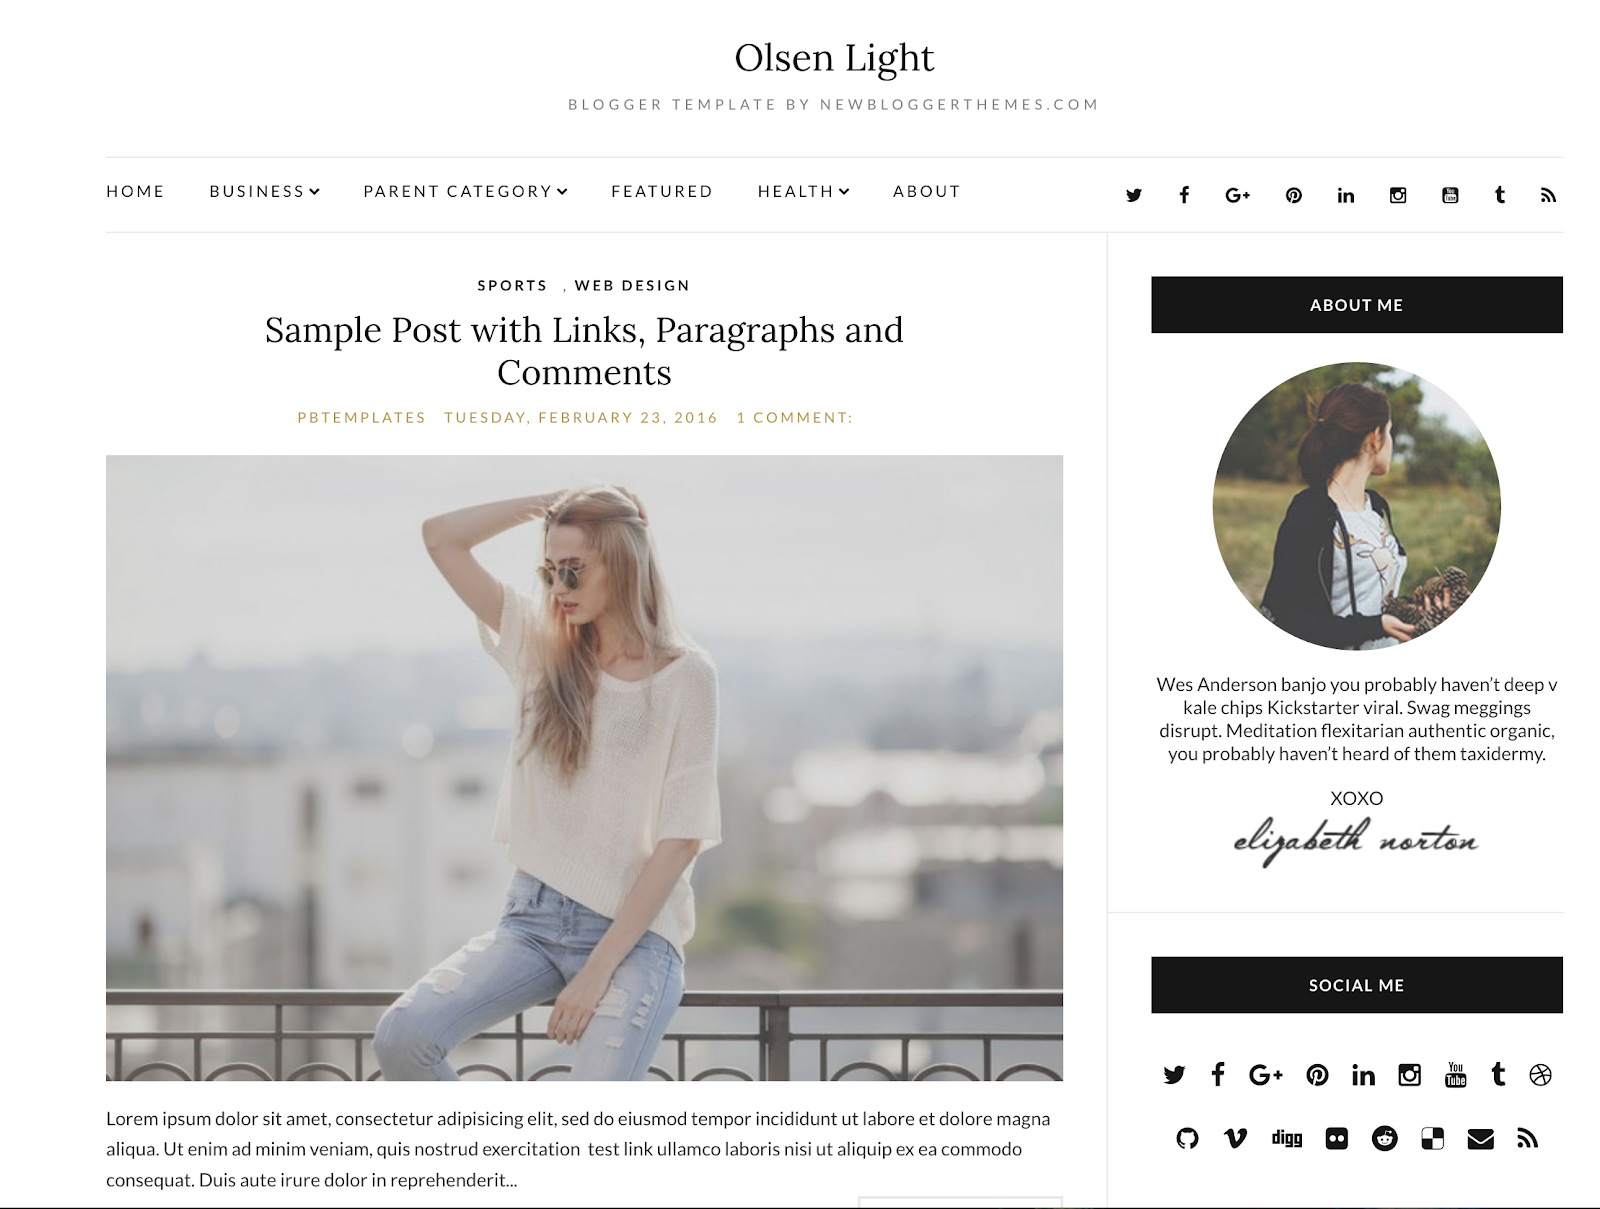 Where to Find Beautiful Blog Templates - A Relaxed Gal